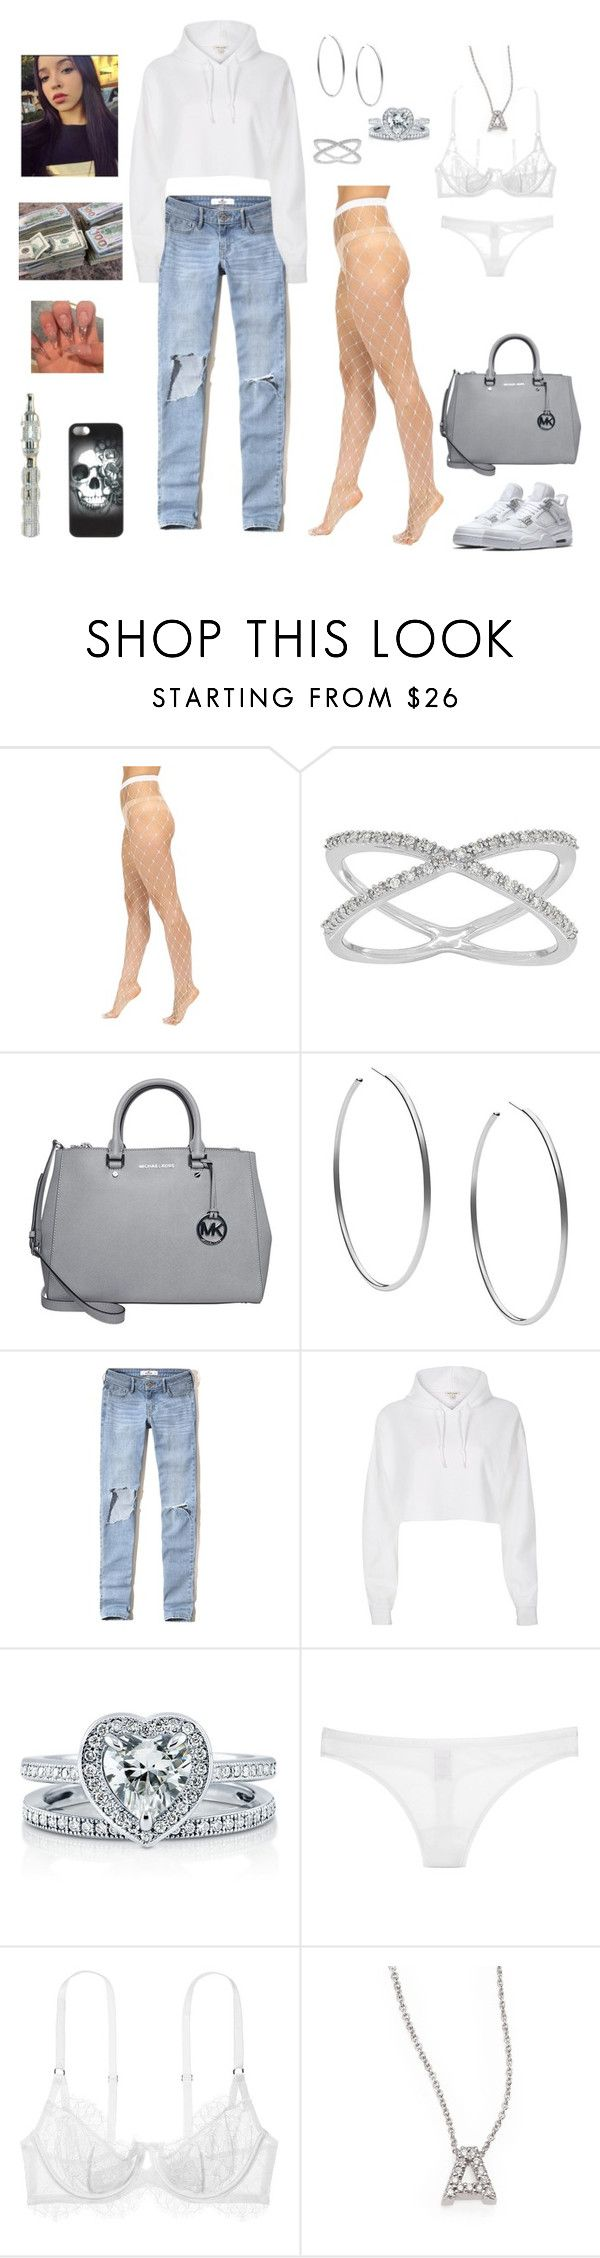 """j o r d a n s"" by whitneykay ❤ liked on Polyvore featuring Wolford, Lord & Taylor, MICHAEL Michael Kors, Michael Kors, Hollister Co., River Island, BERRICLE, Victoria's Secret, Roberto Coin and Metal Mulisha"